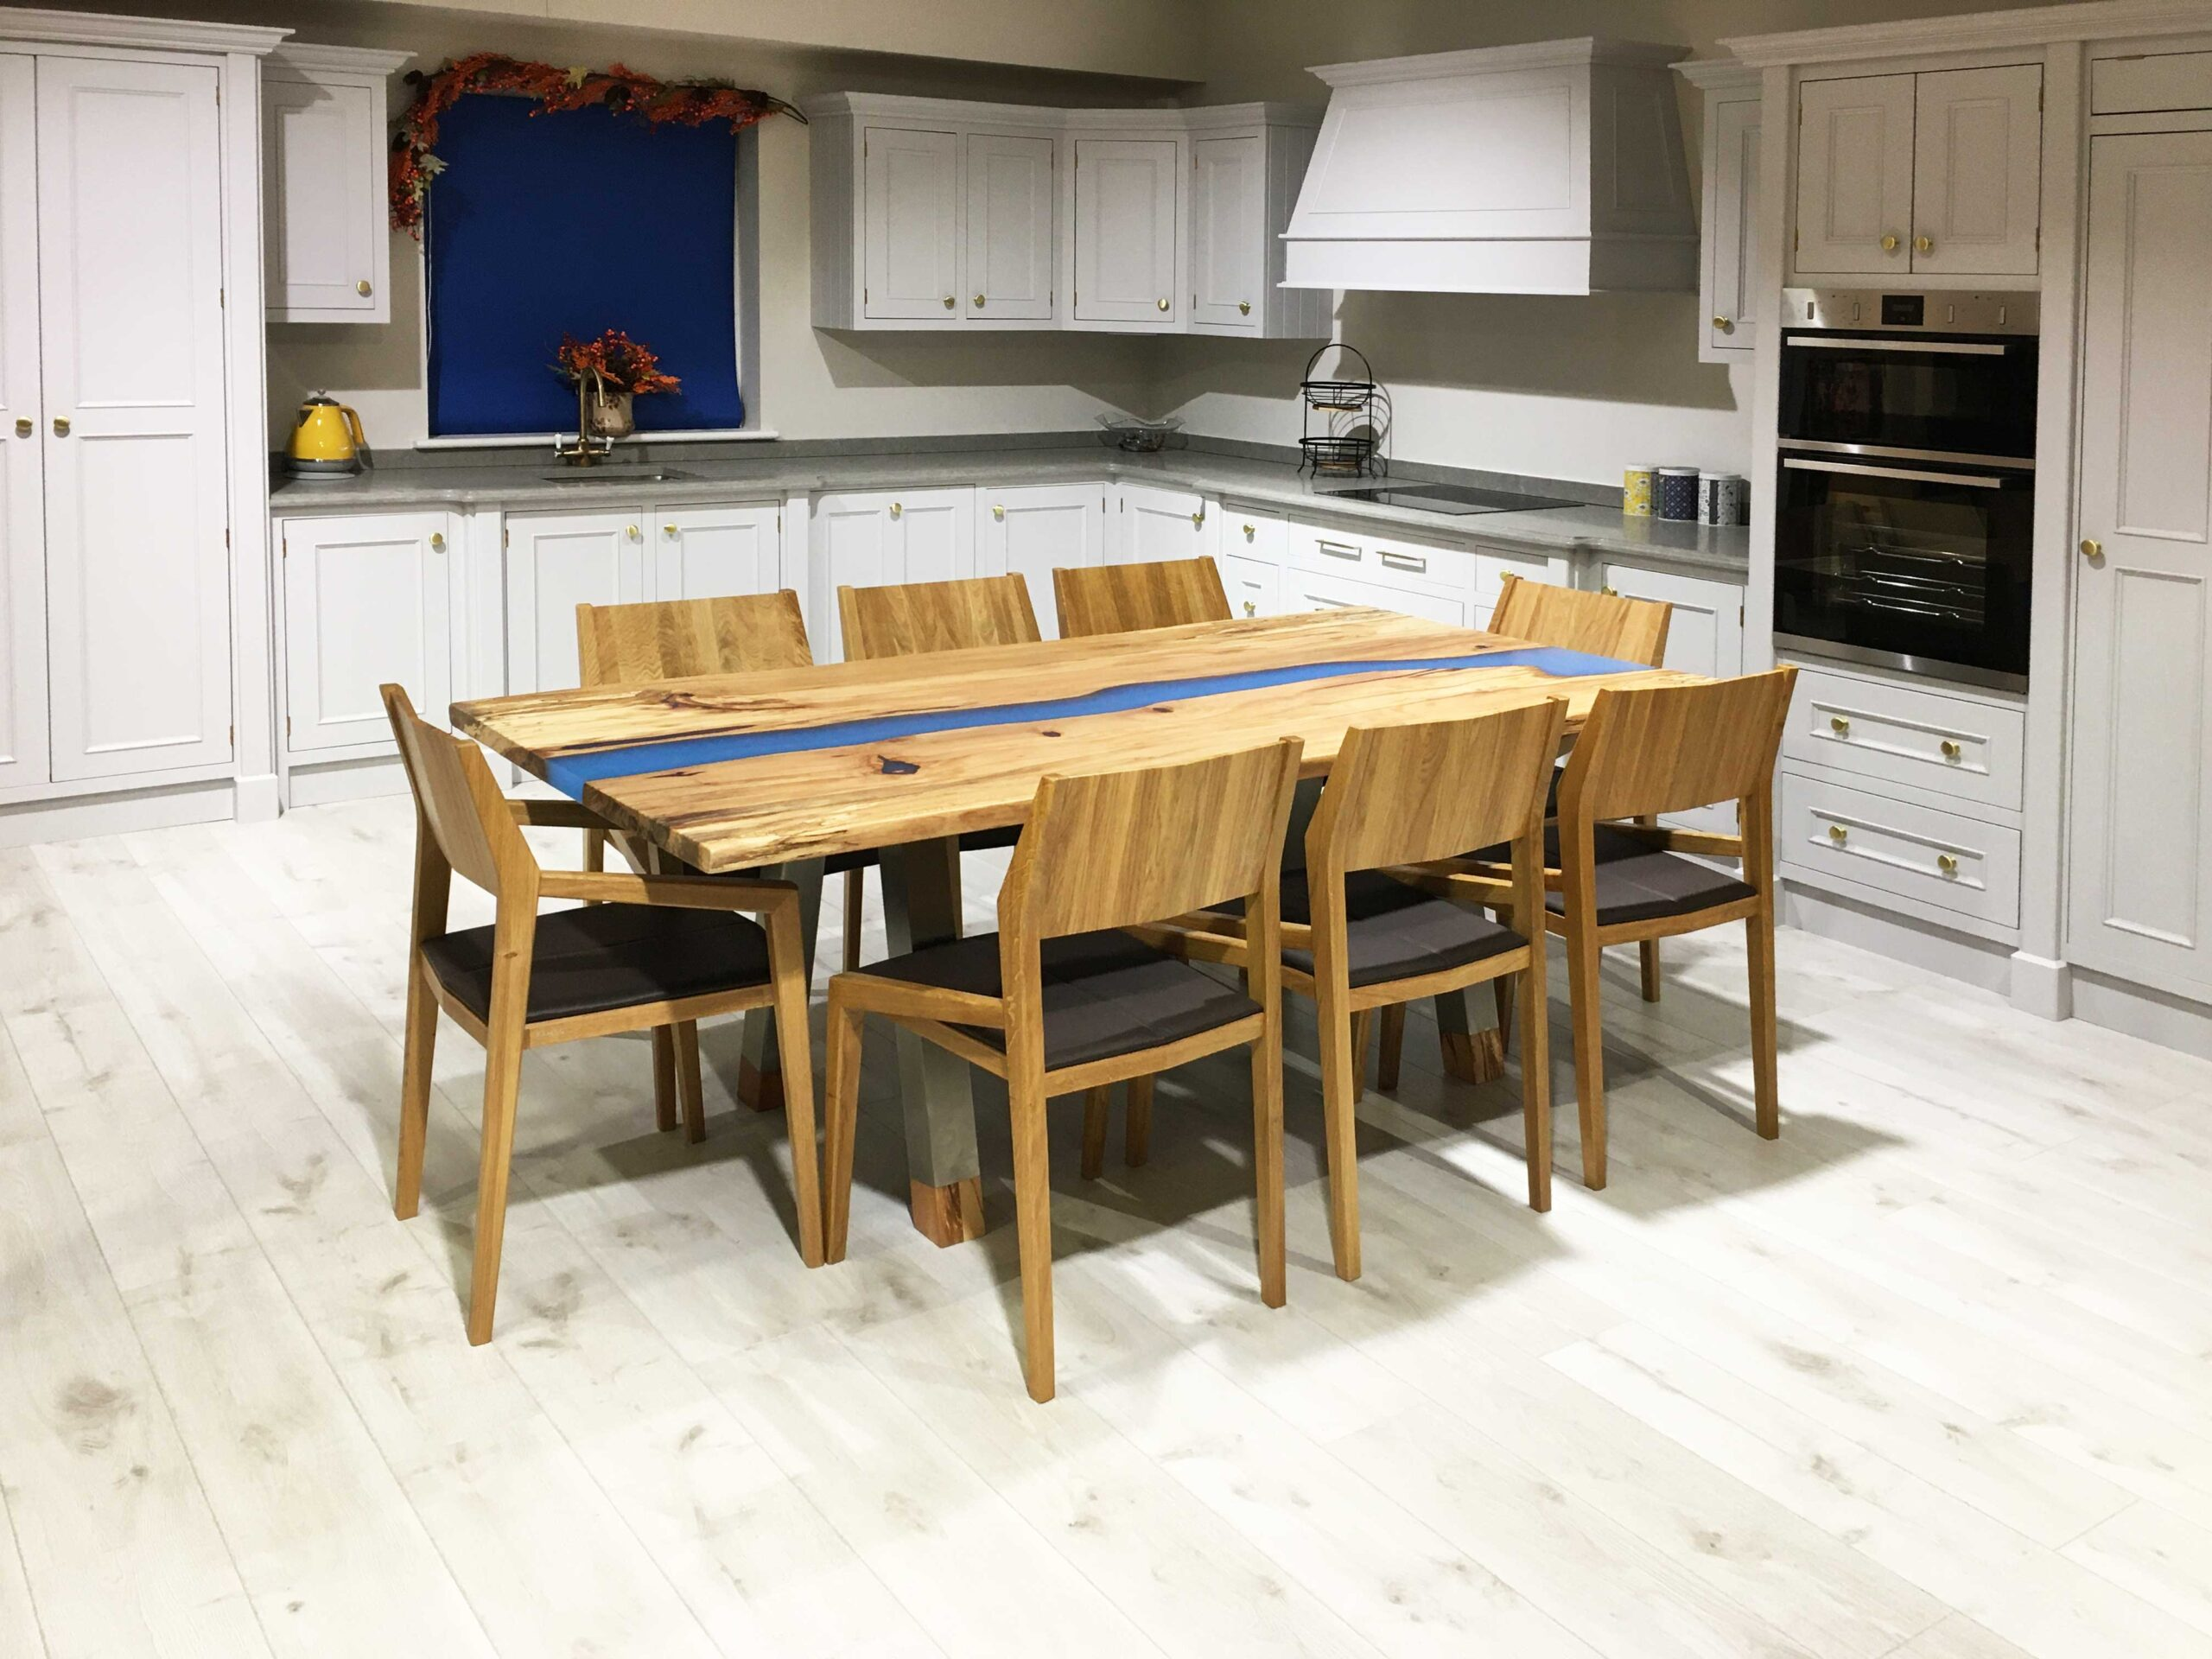 Spalted-Beech-Blue-Resin-Delta-Table-Stainless-Steel-Legs